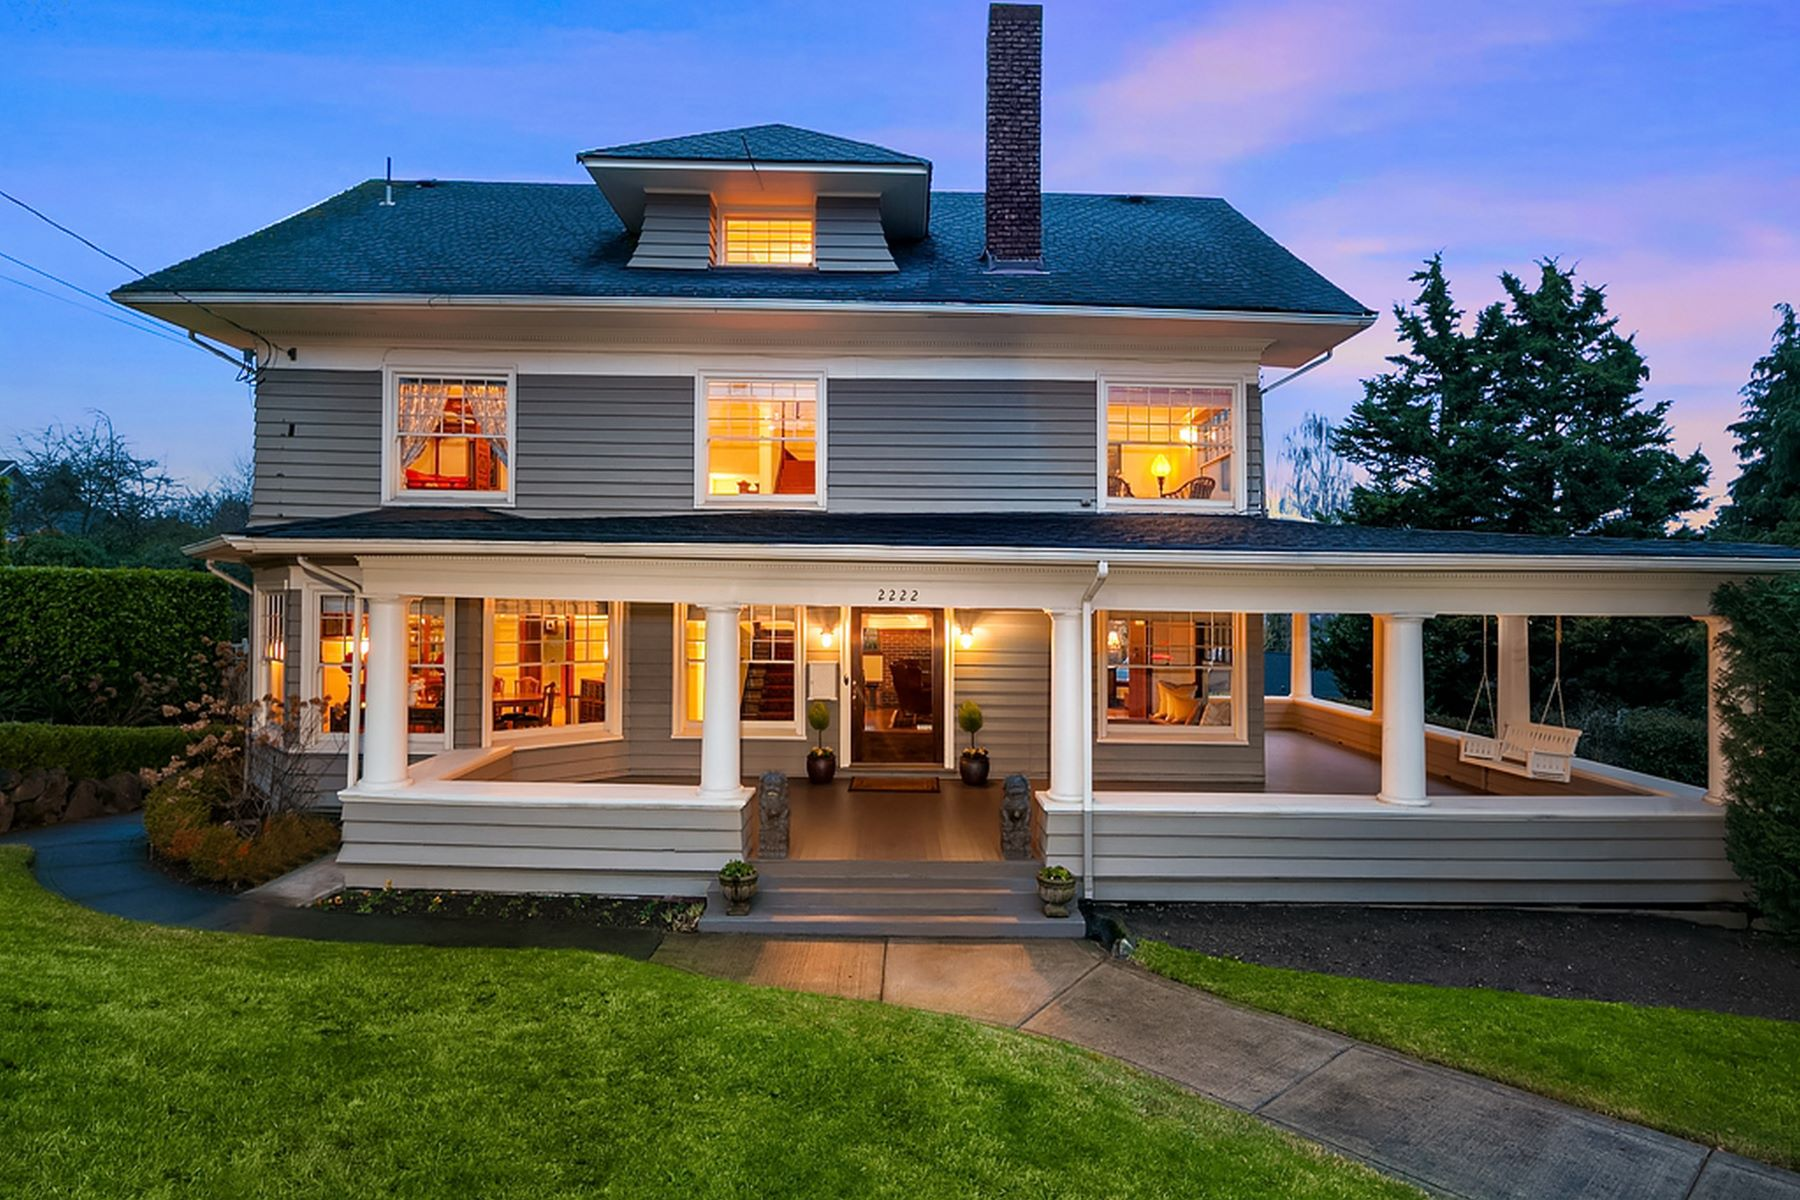 Single Family Home for Sale at 2222 Crescent Dr, Seattle 2222 E Crescent Dr Seattle, Washington 98112 United States